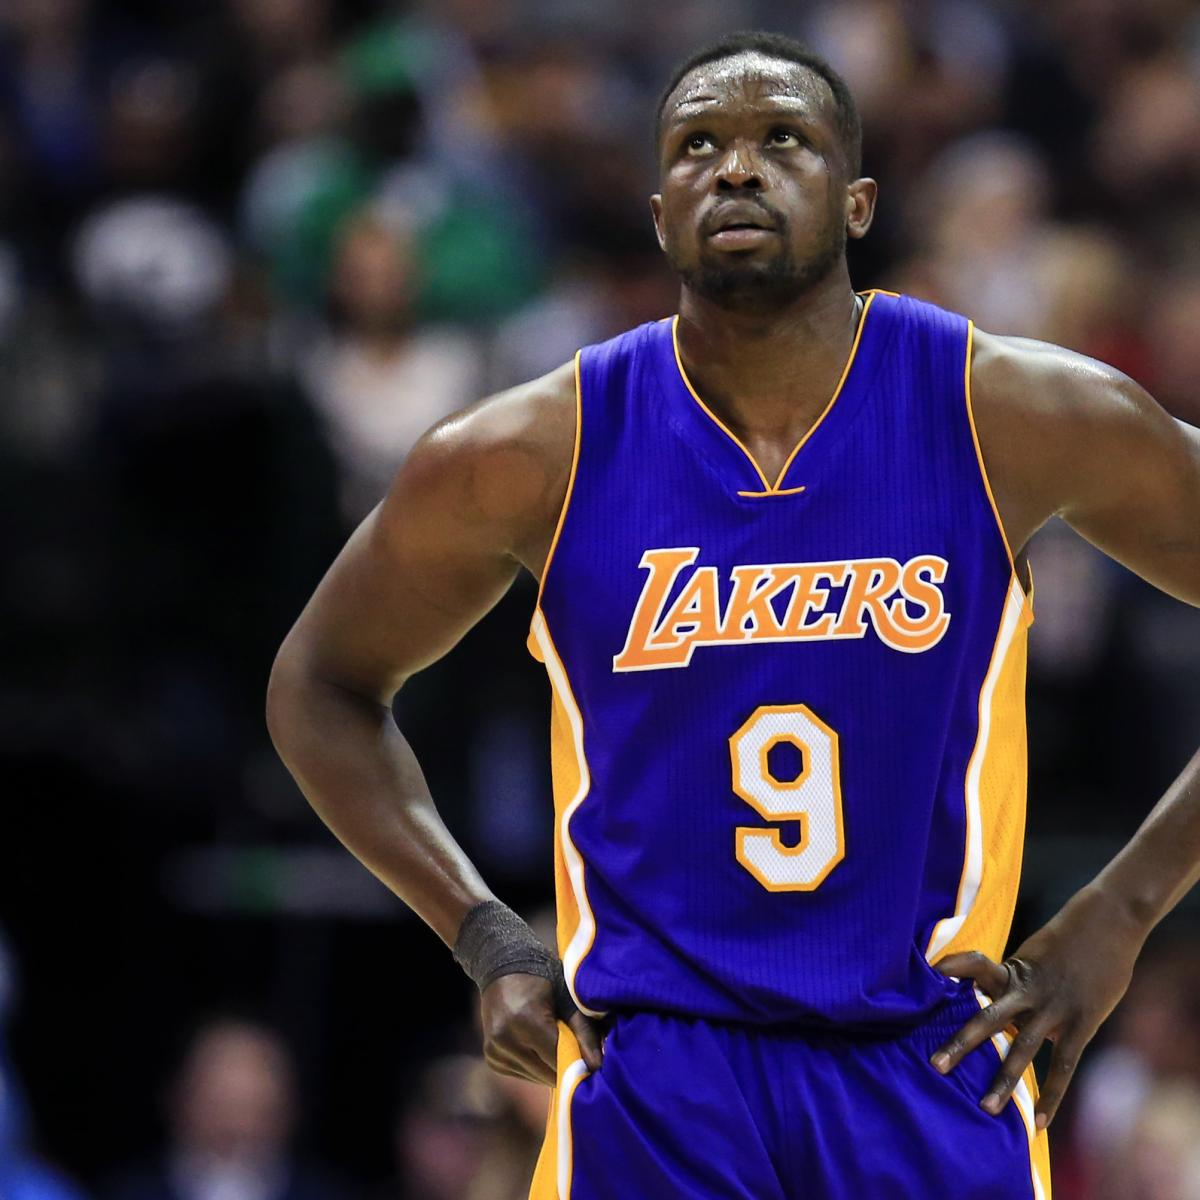 Lakers Rumors: LA Requests Luol Deng's Contract Come off Books Due to Injury